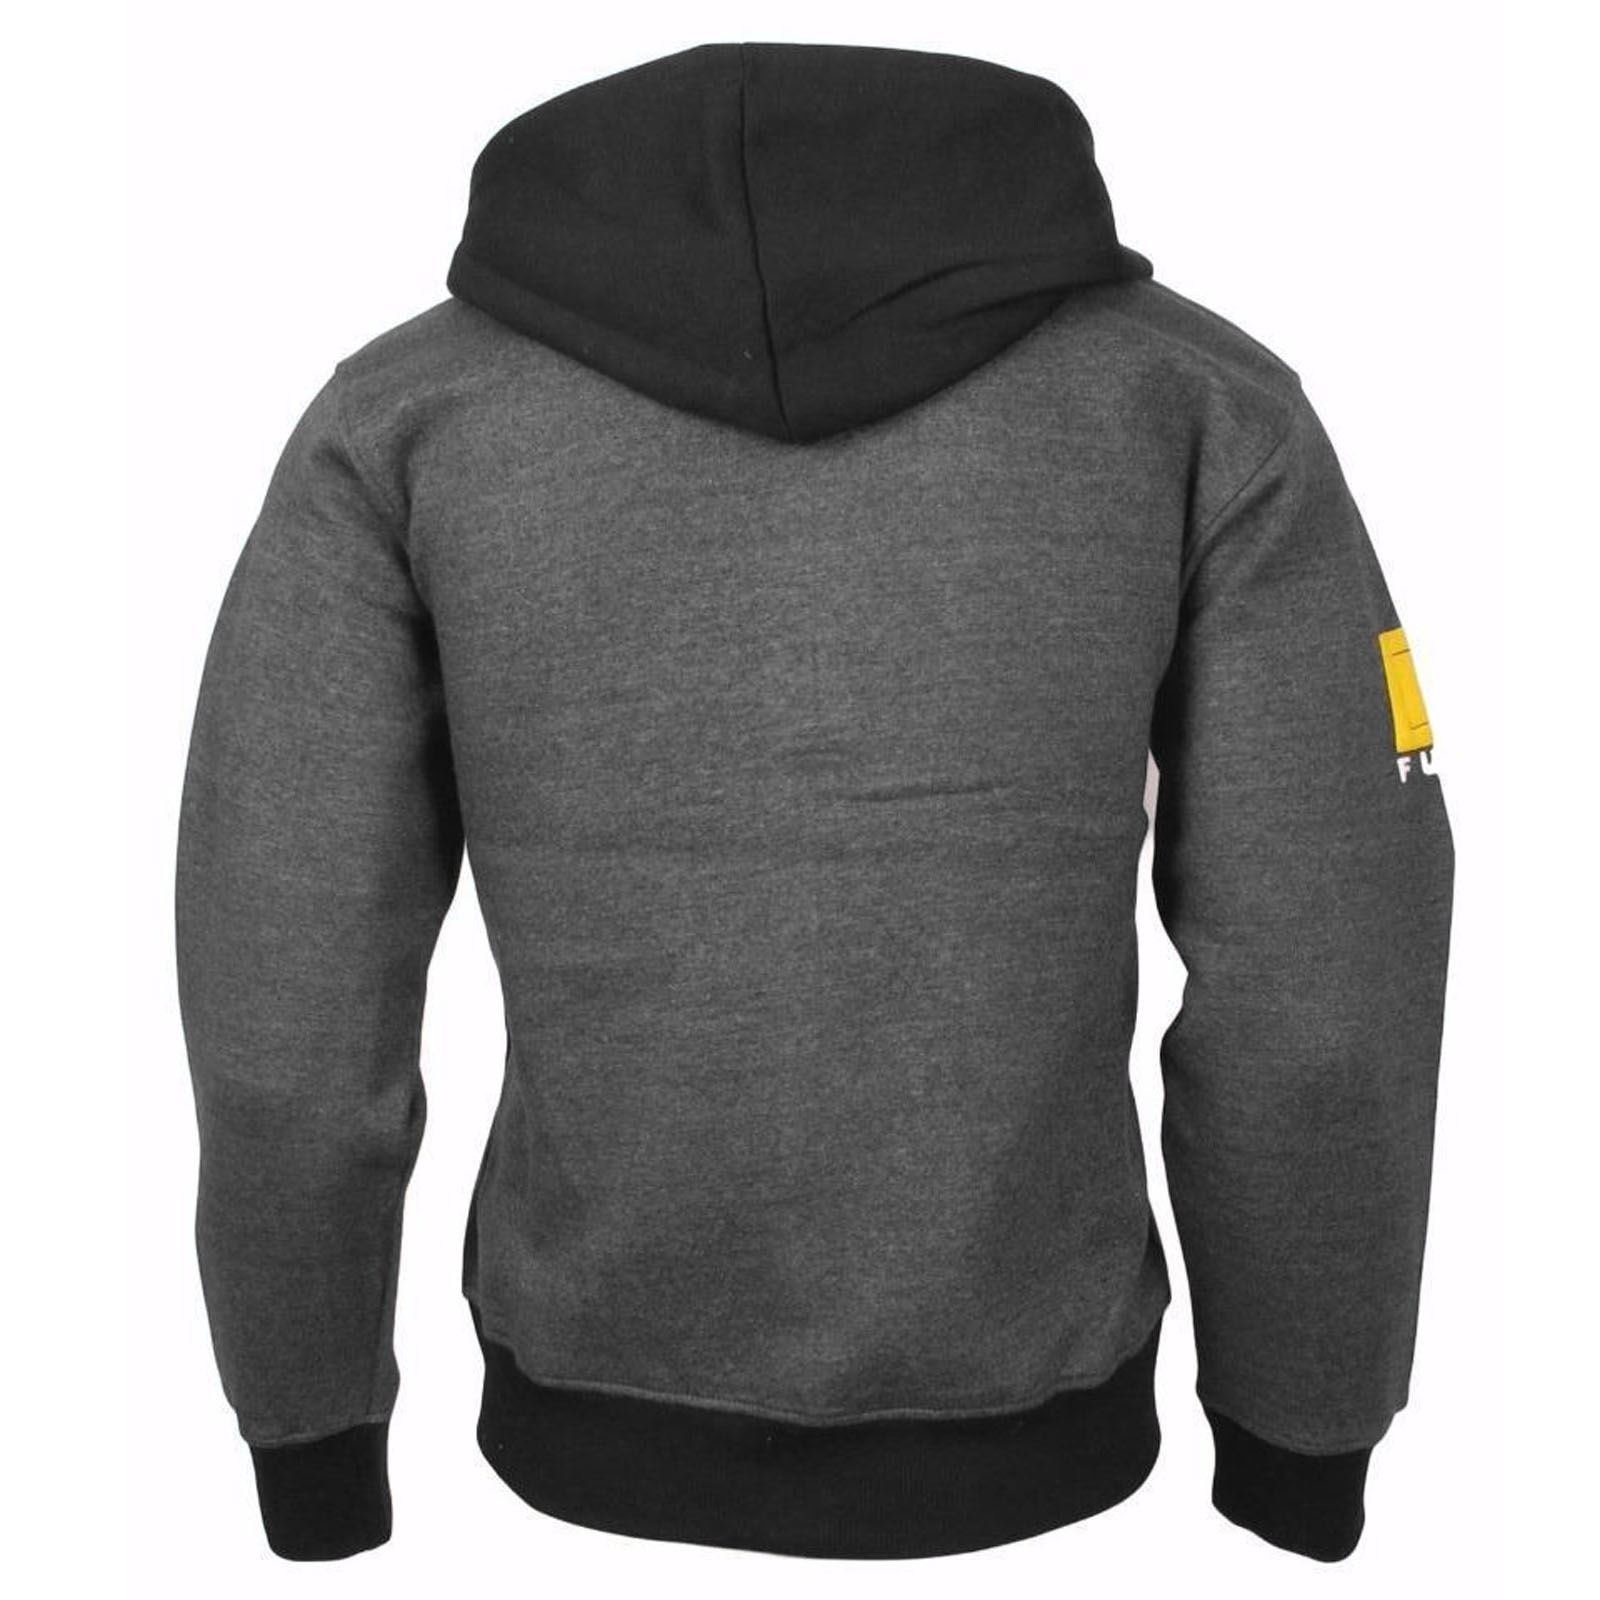 Mens DL FUNK Hoodie Sweatshirt Hooded Zip Up Stylish Jumper Fleece Top Jacket